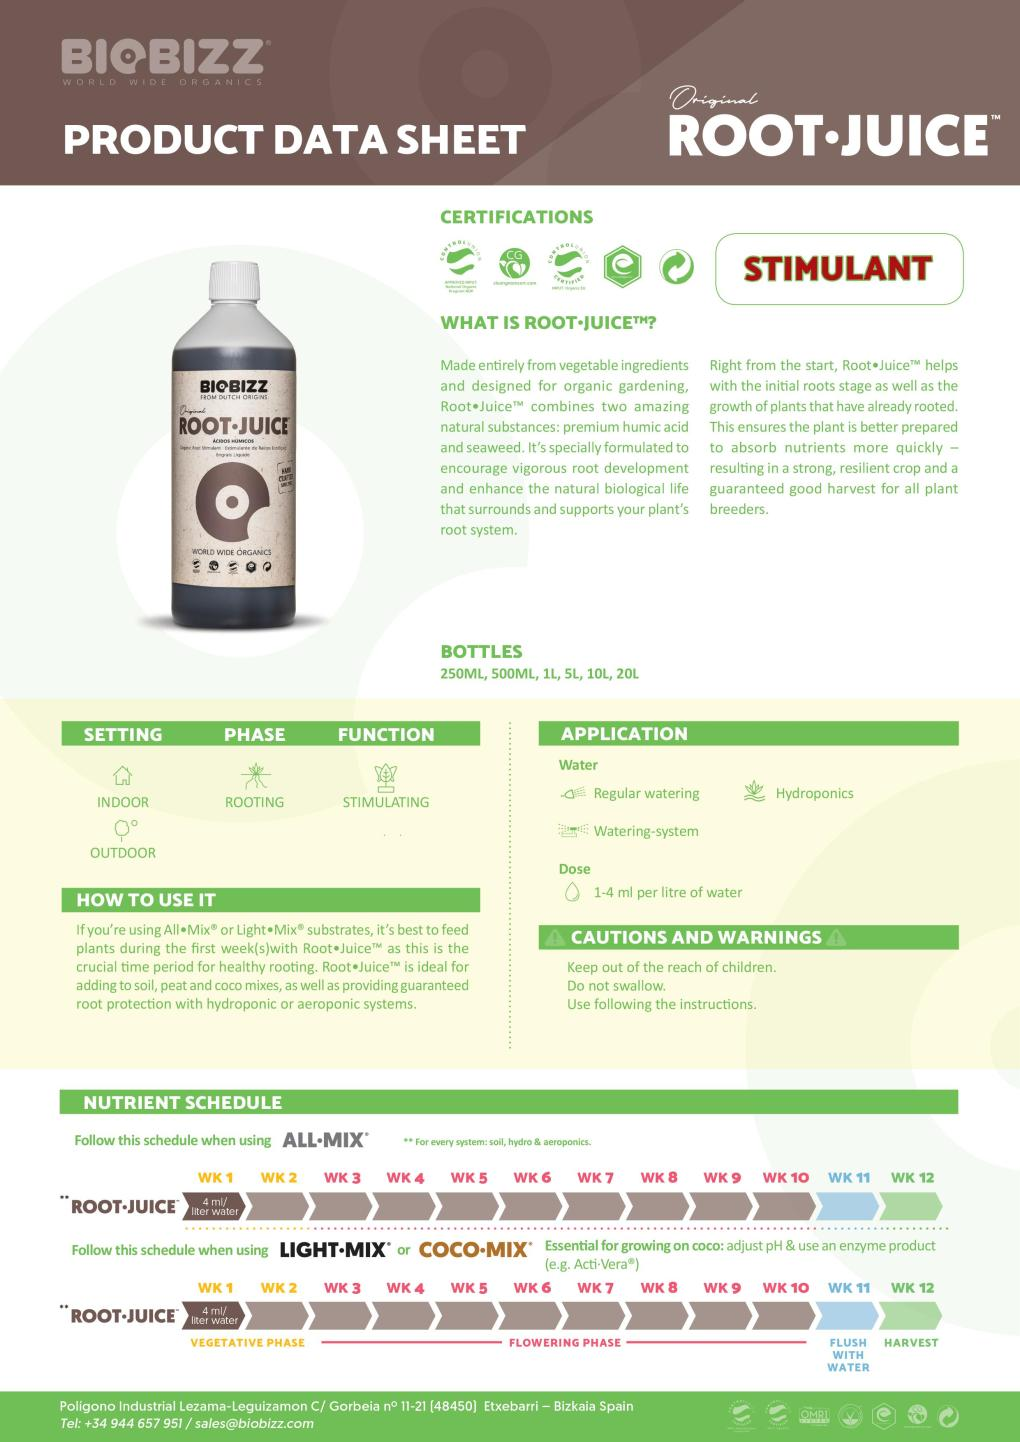 Biobizz Root-Juice Product Data Sheet 2020